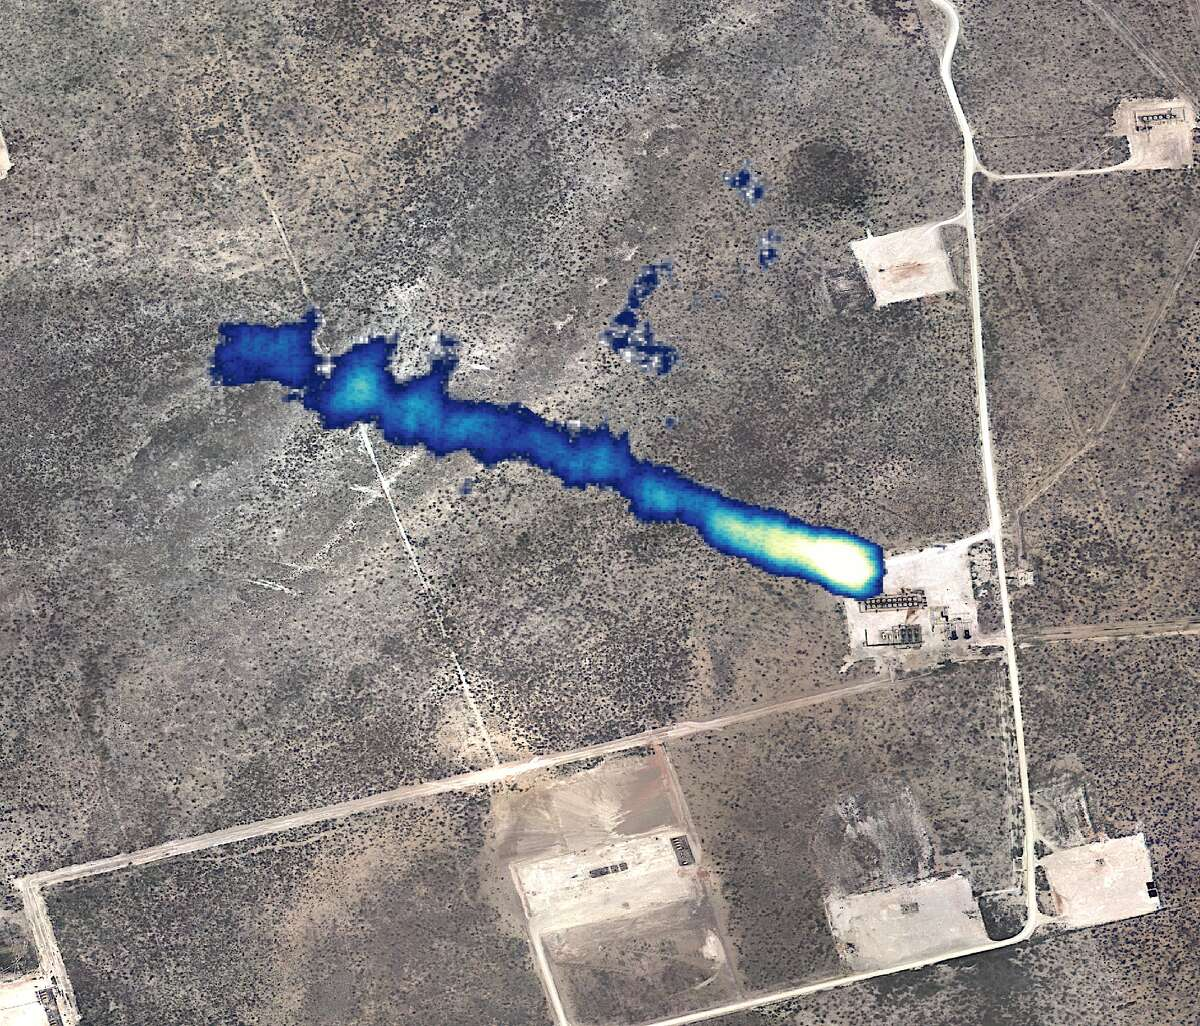 Kairos Aerospace, which routinely performs aerial surveys of the Permian Basin looking for methane emissions, has joined with DCP Midstream to survey its natural gas gathering system in Texas, New Mexico and Colorado. The survey is done with a pod containing sensors attached to the plane's wing strut.